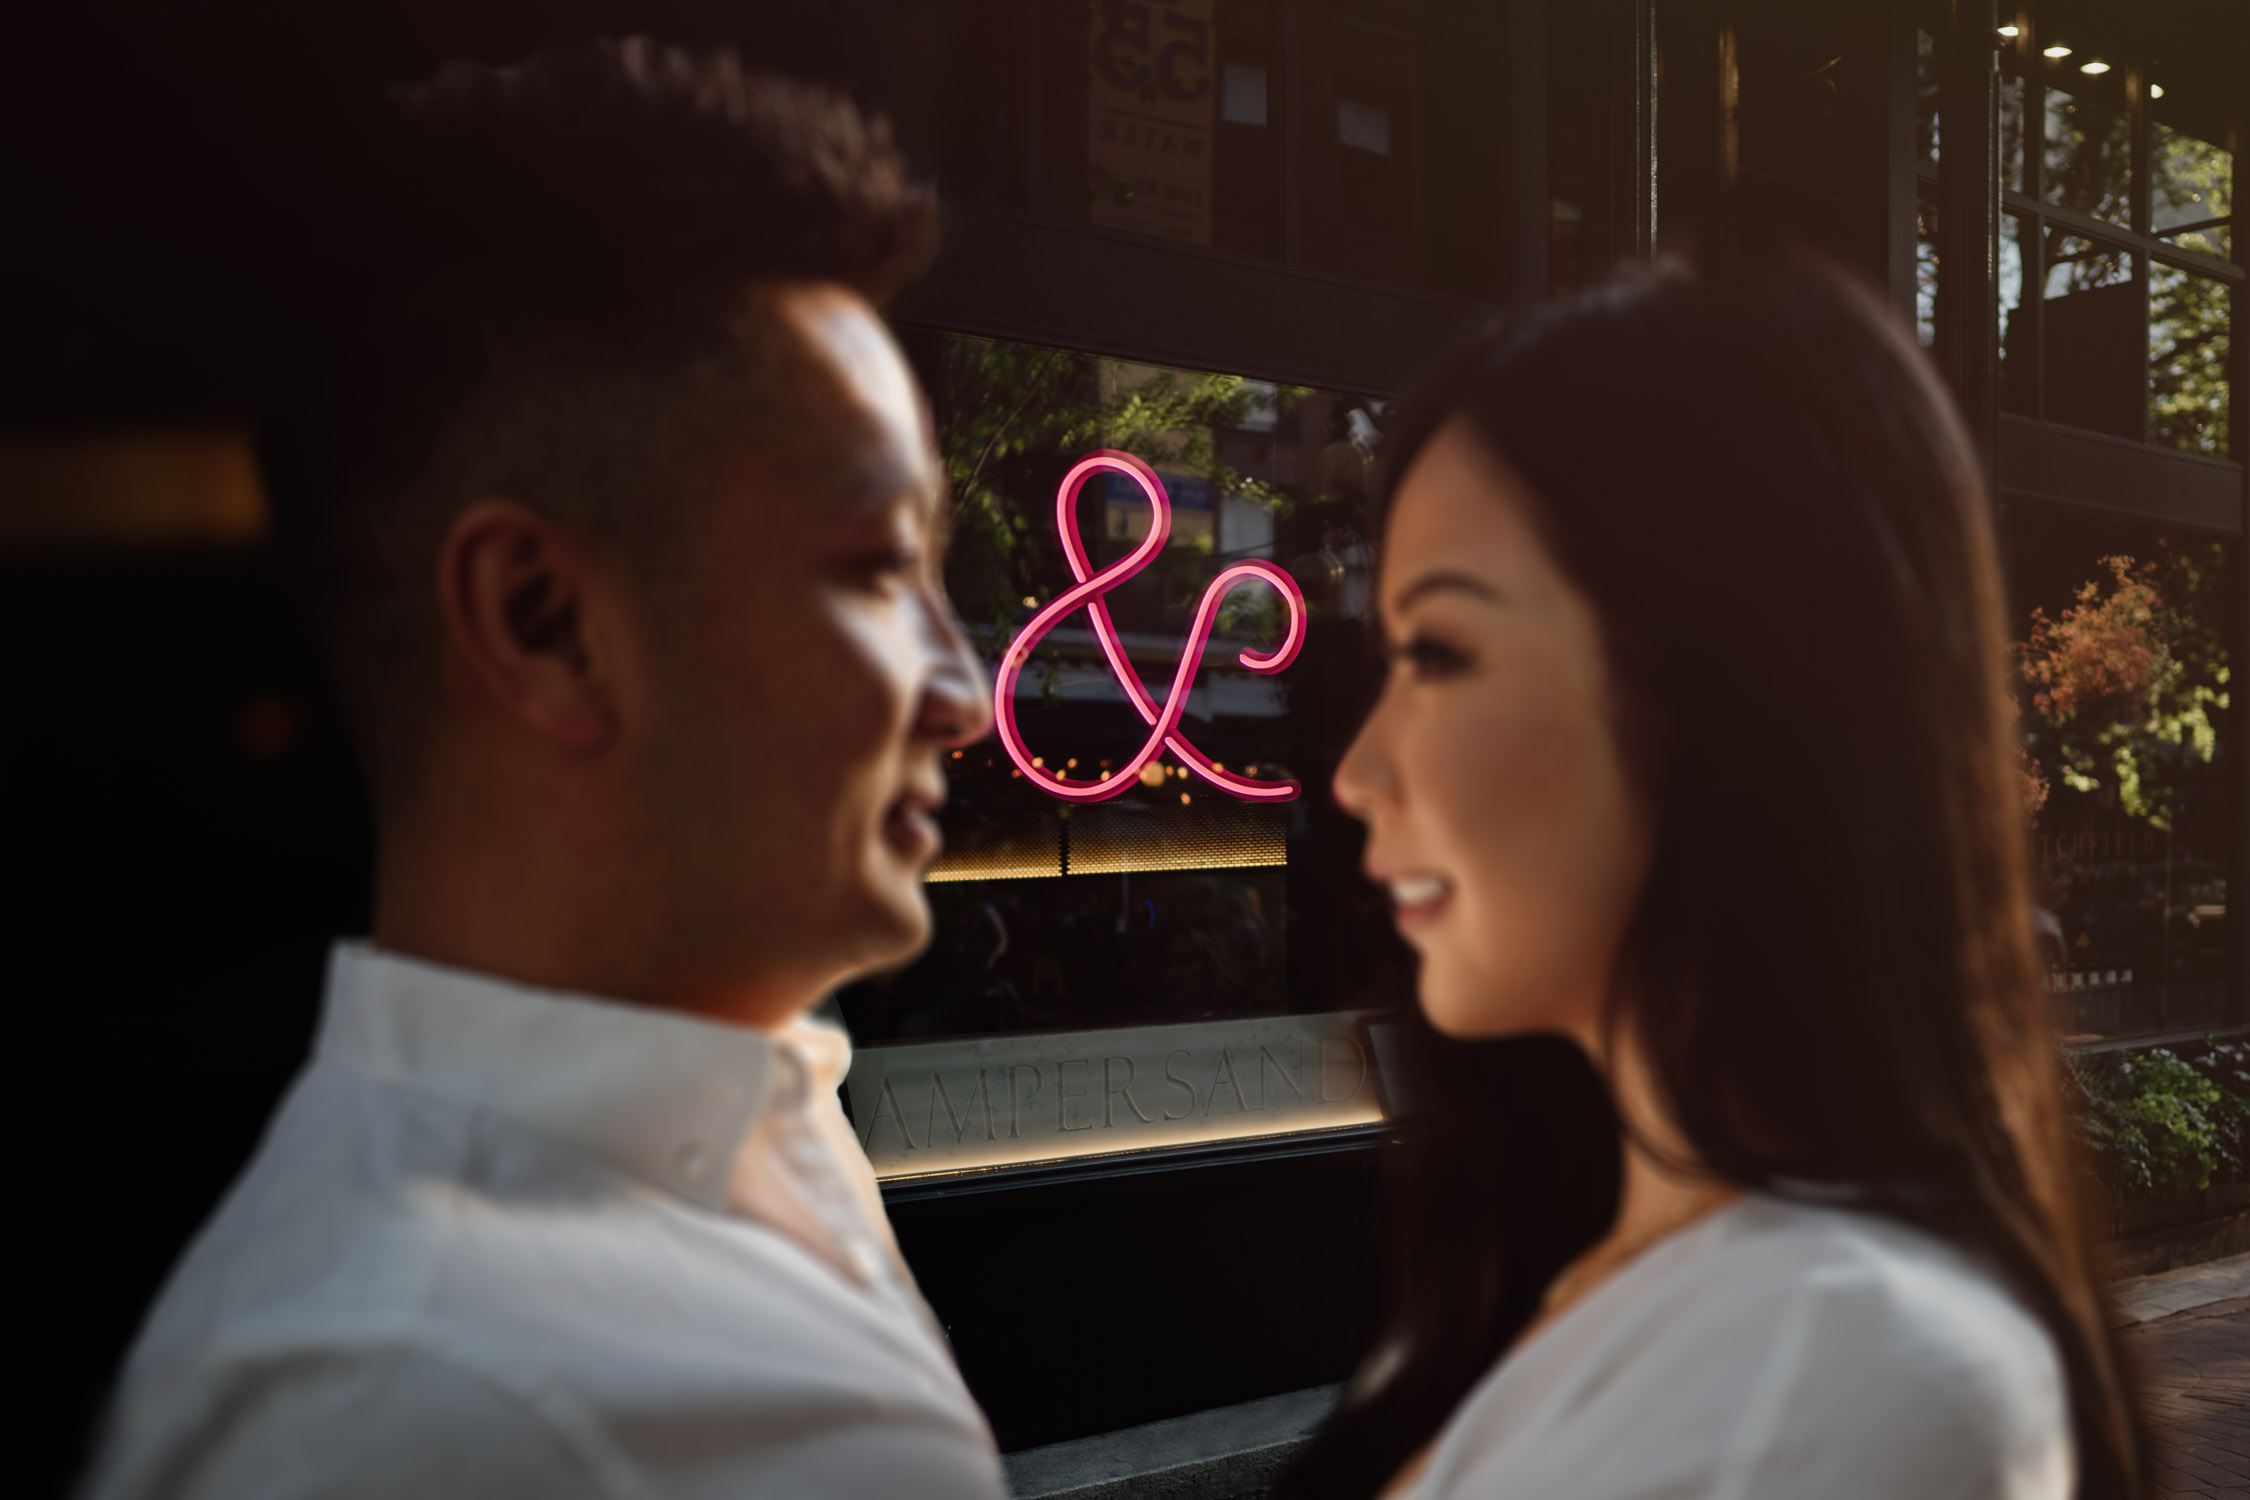 ampersand restaurant  gastown engagement photography during golden hour in the summer located in vancouver bc canada